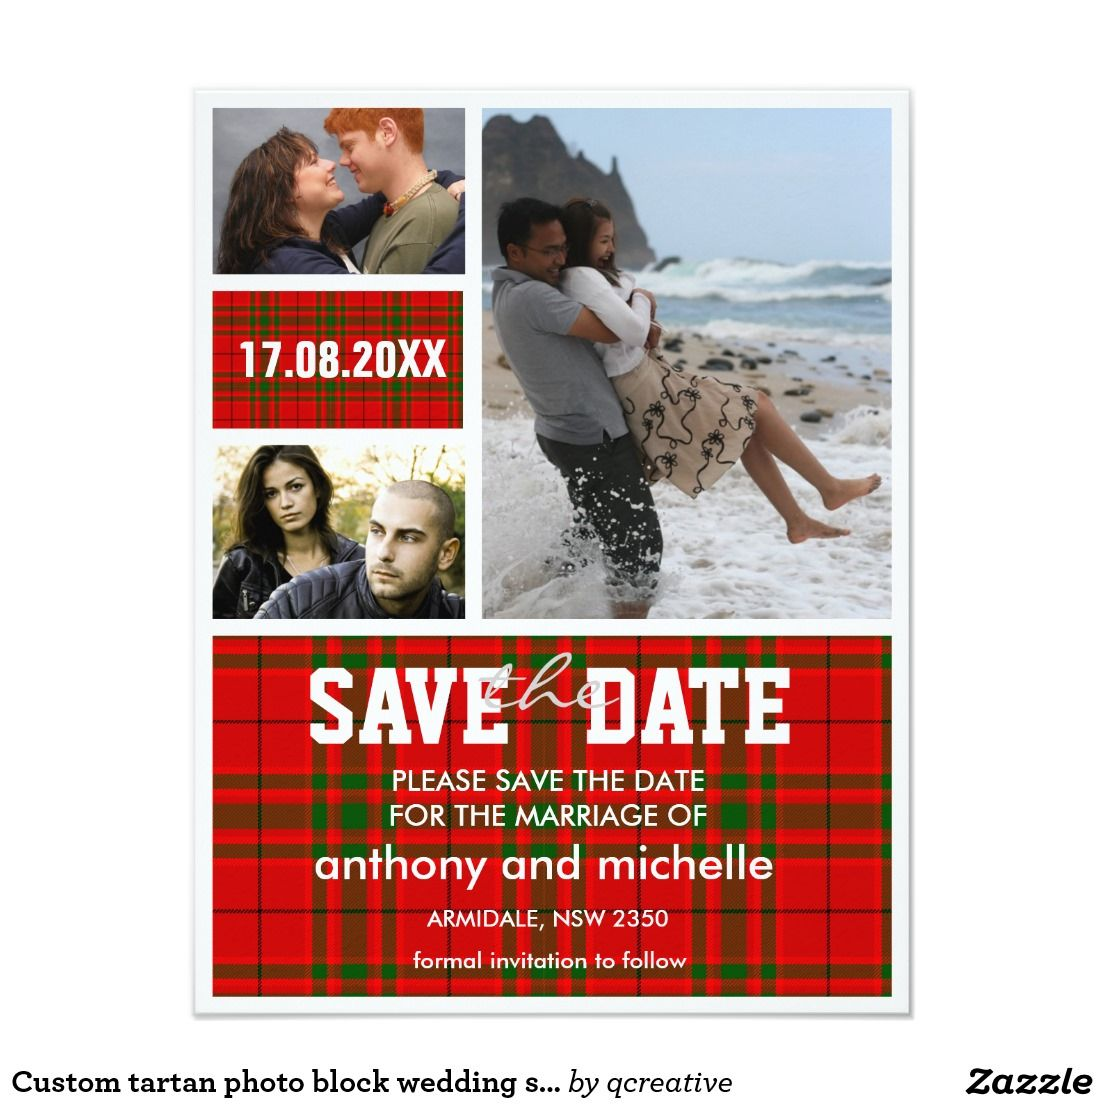 Custom tartan photo block wedding save the date | Pinterest ...